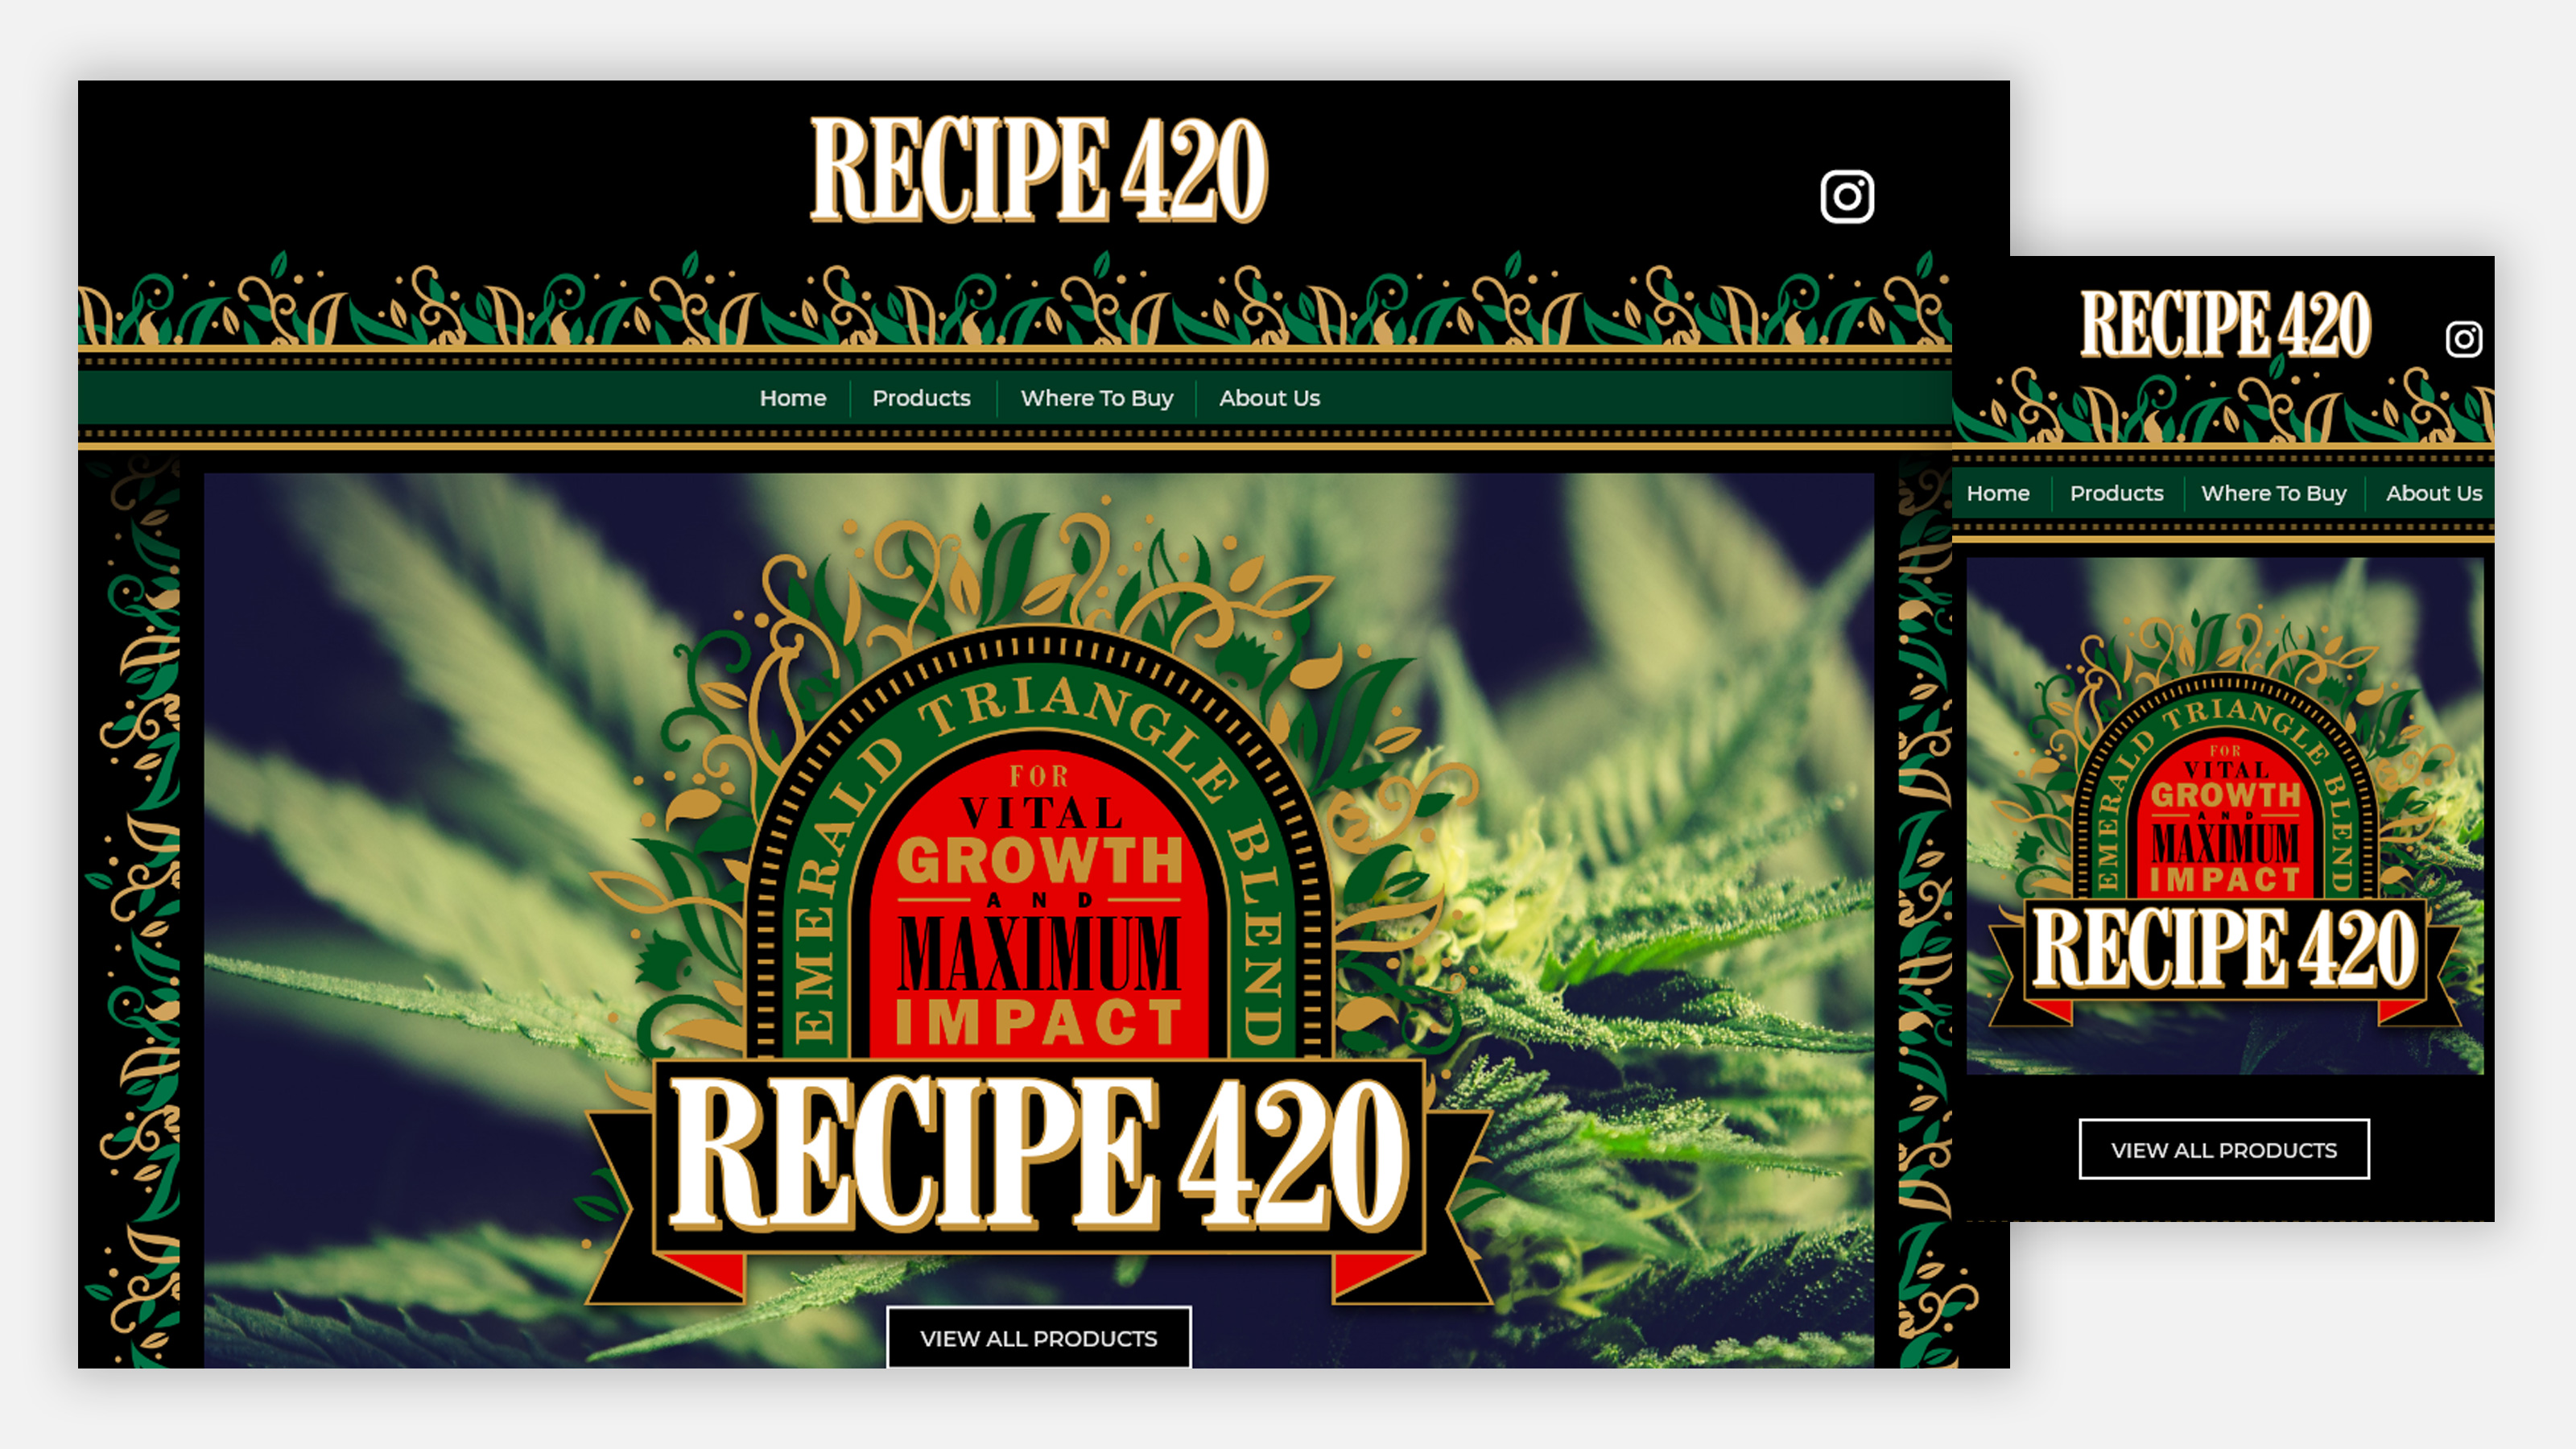 Recipe 420 website home page on desktop and mobile